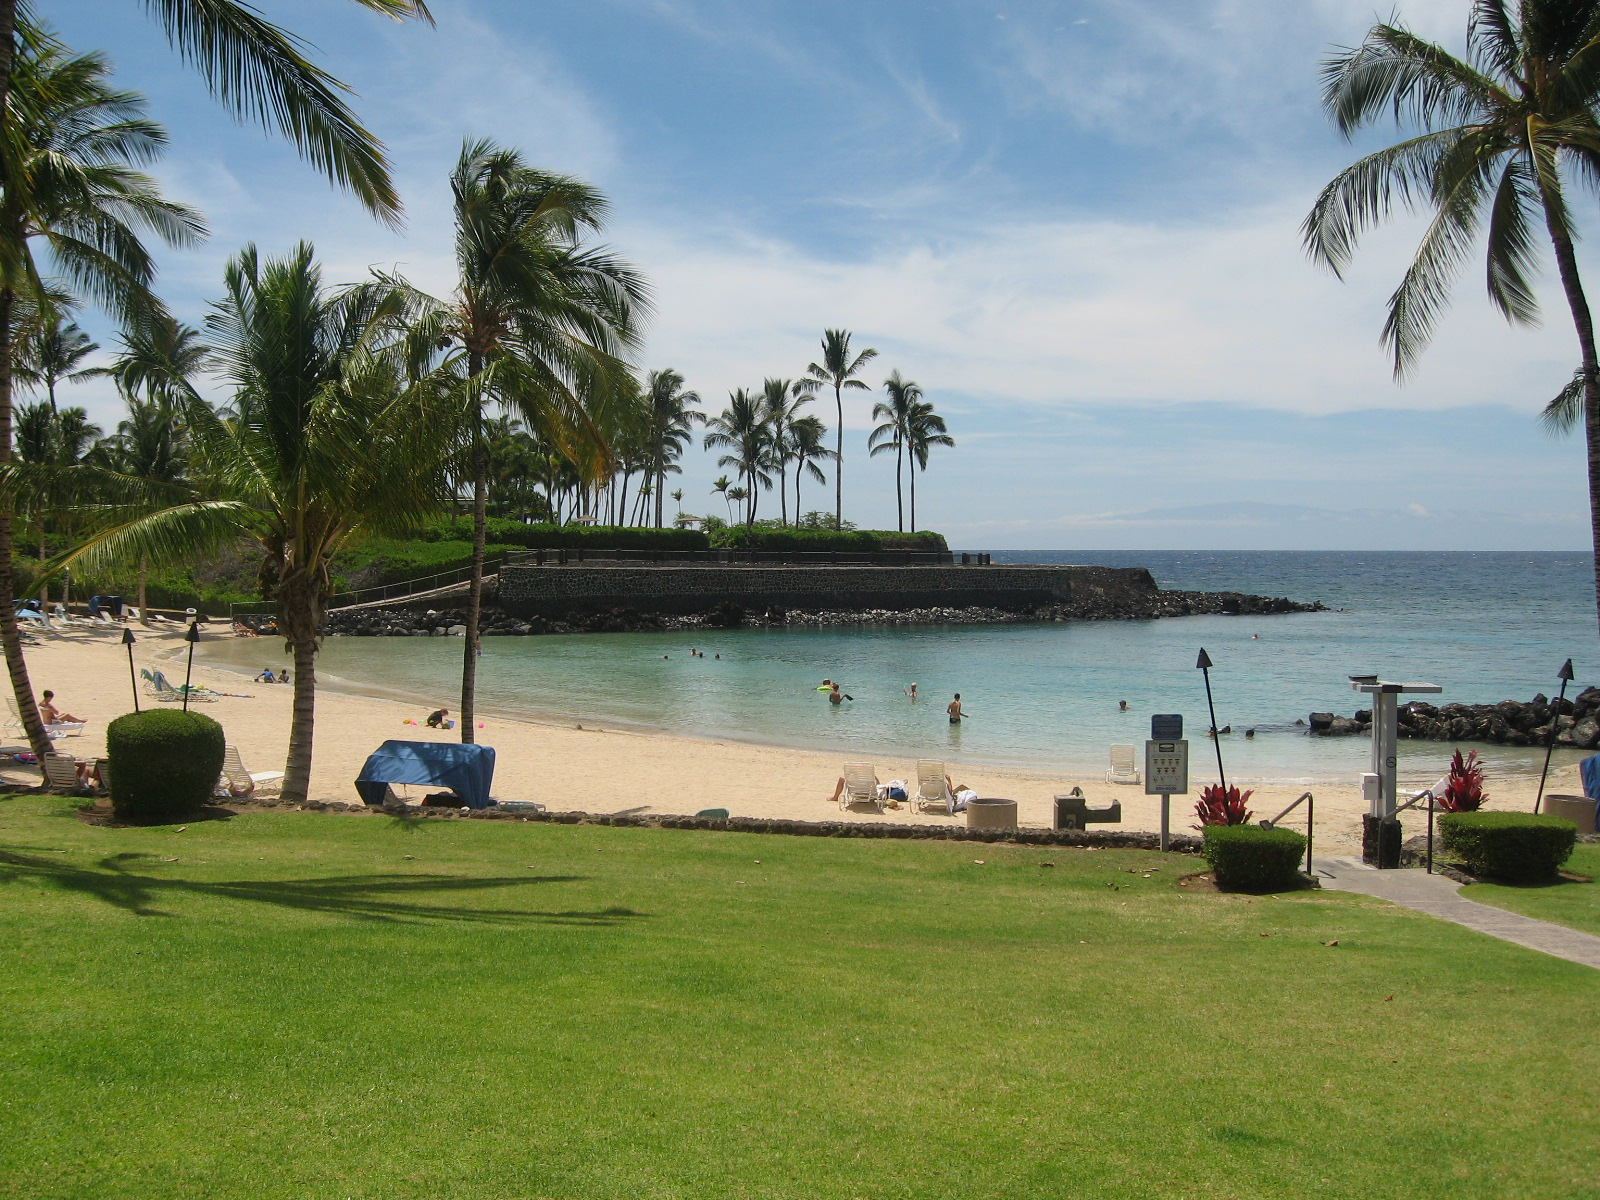 Fairmont Orchid Beach Club